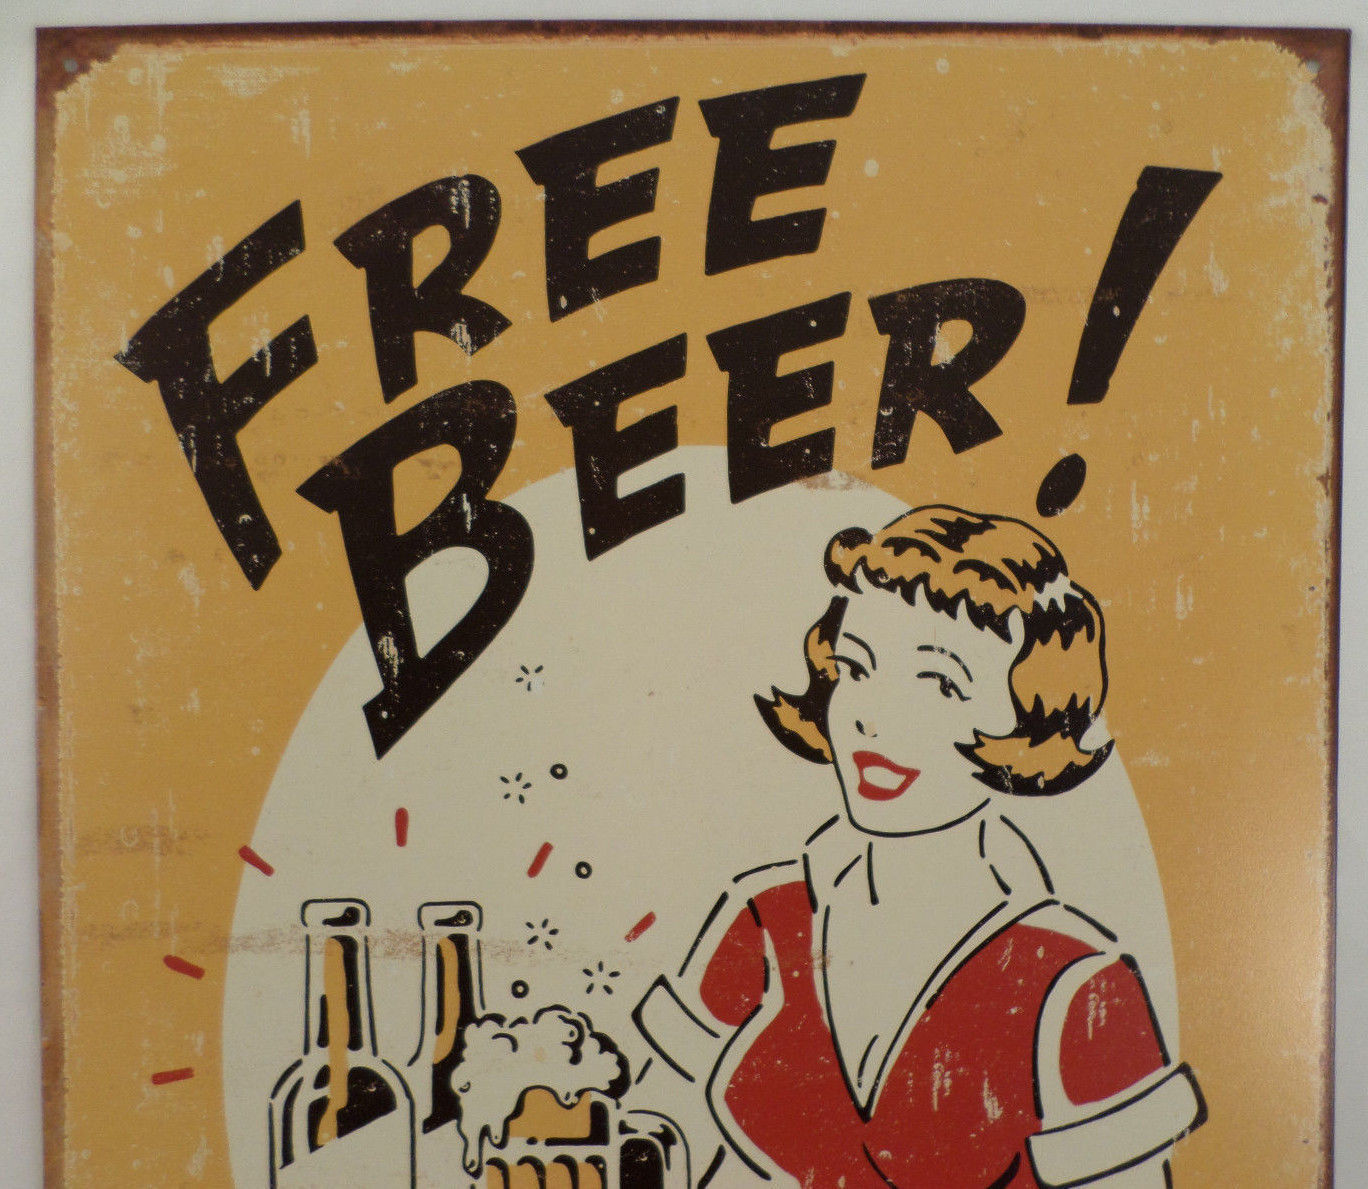 Man Cave Vintage Signs : Free beer tomorrow retro inspired tin sign man cave wall